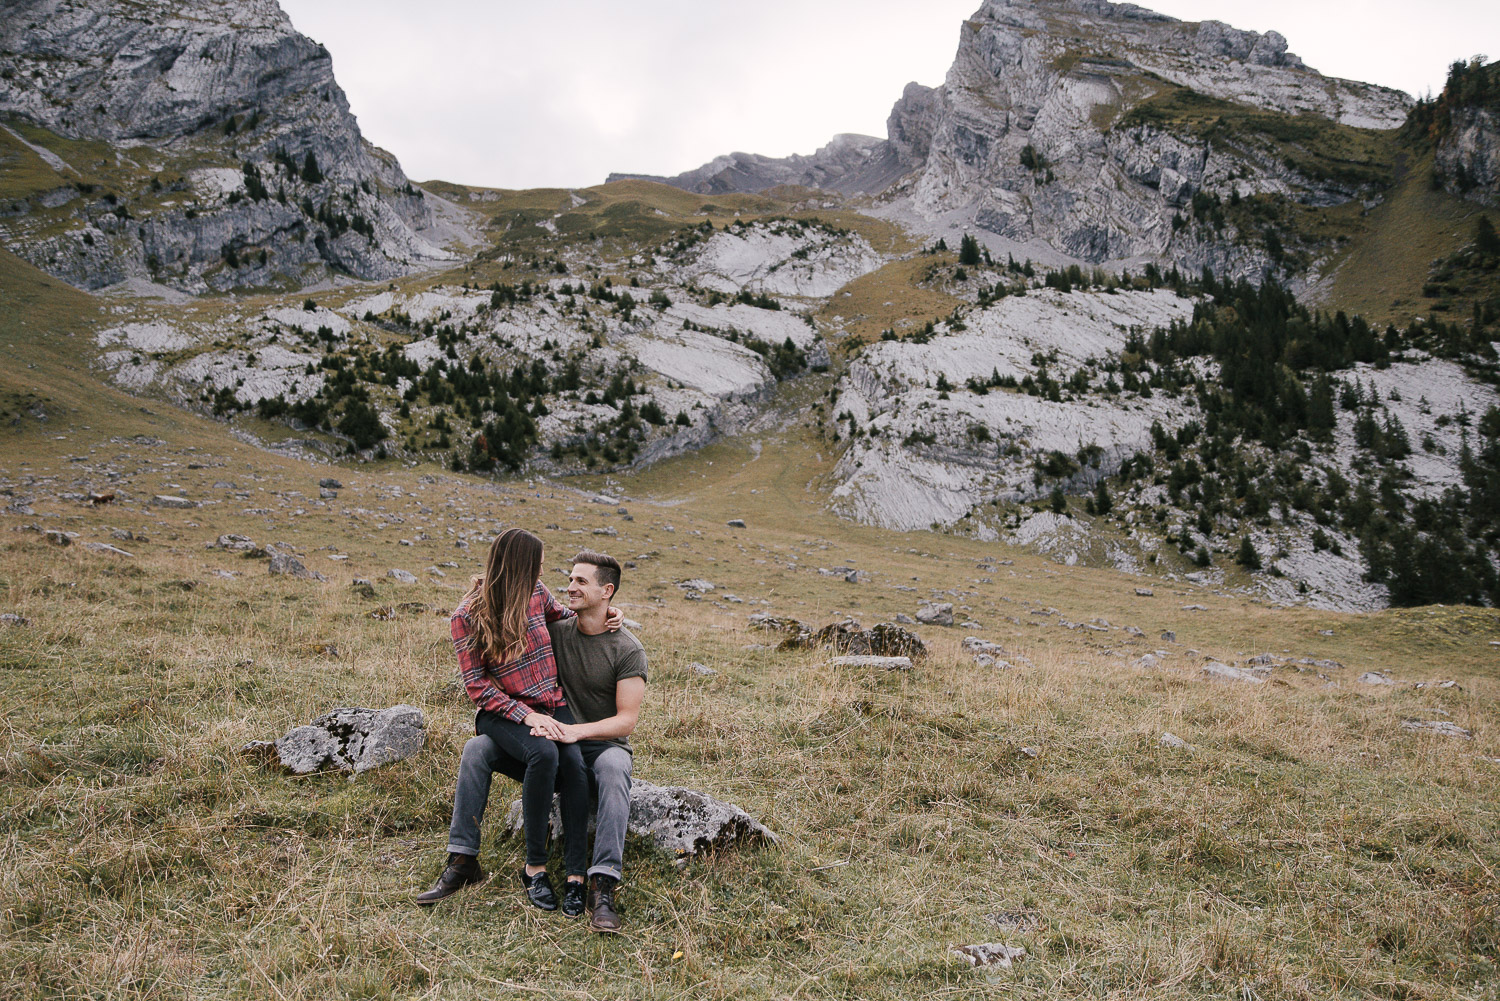 photographe mariage famille entreprise grenoble lyon annecy chambery seance engagement nature